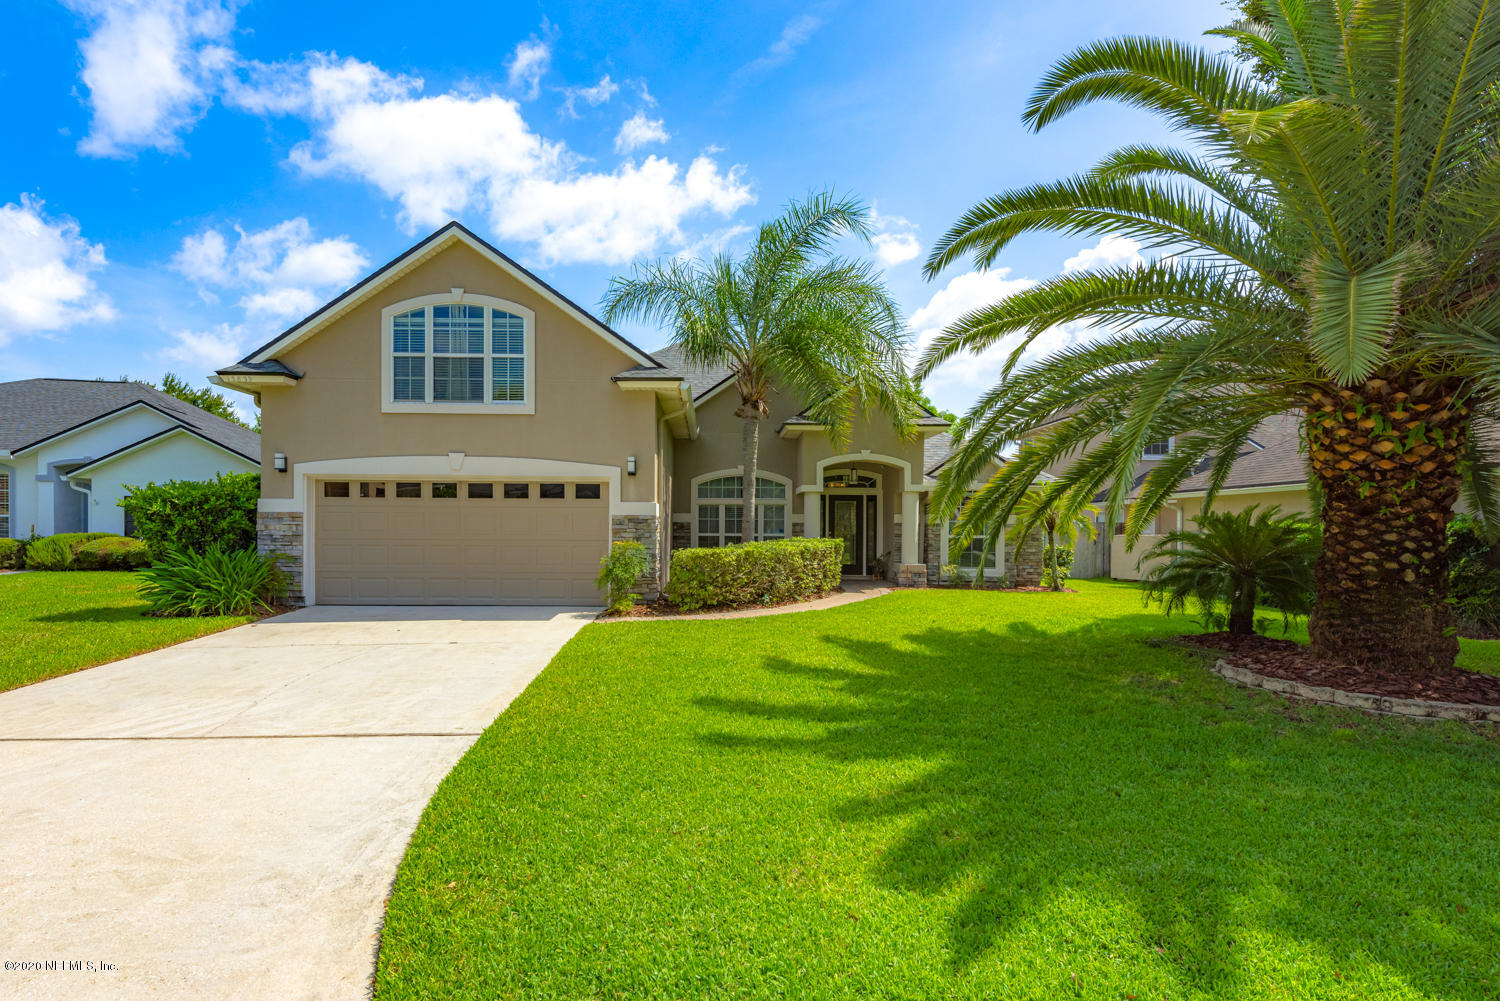 Details for 13839 Weeping Willow Way, JACKSONVILLE, FL 32224